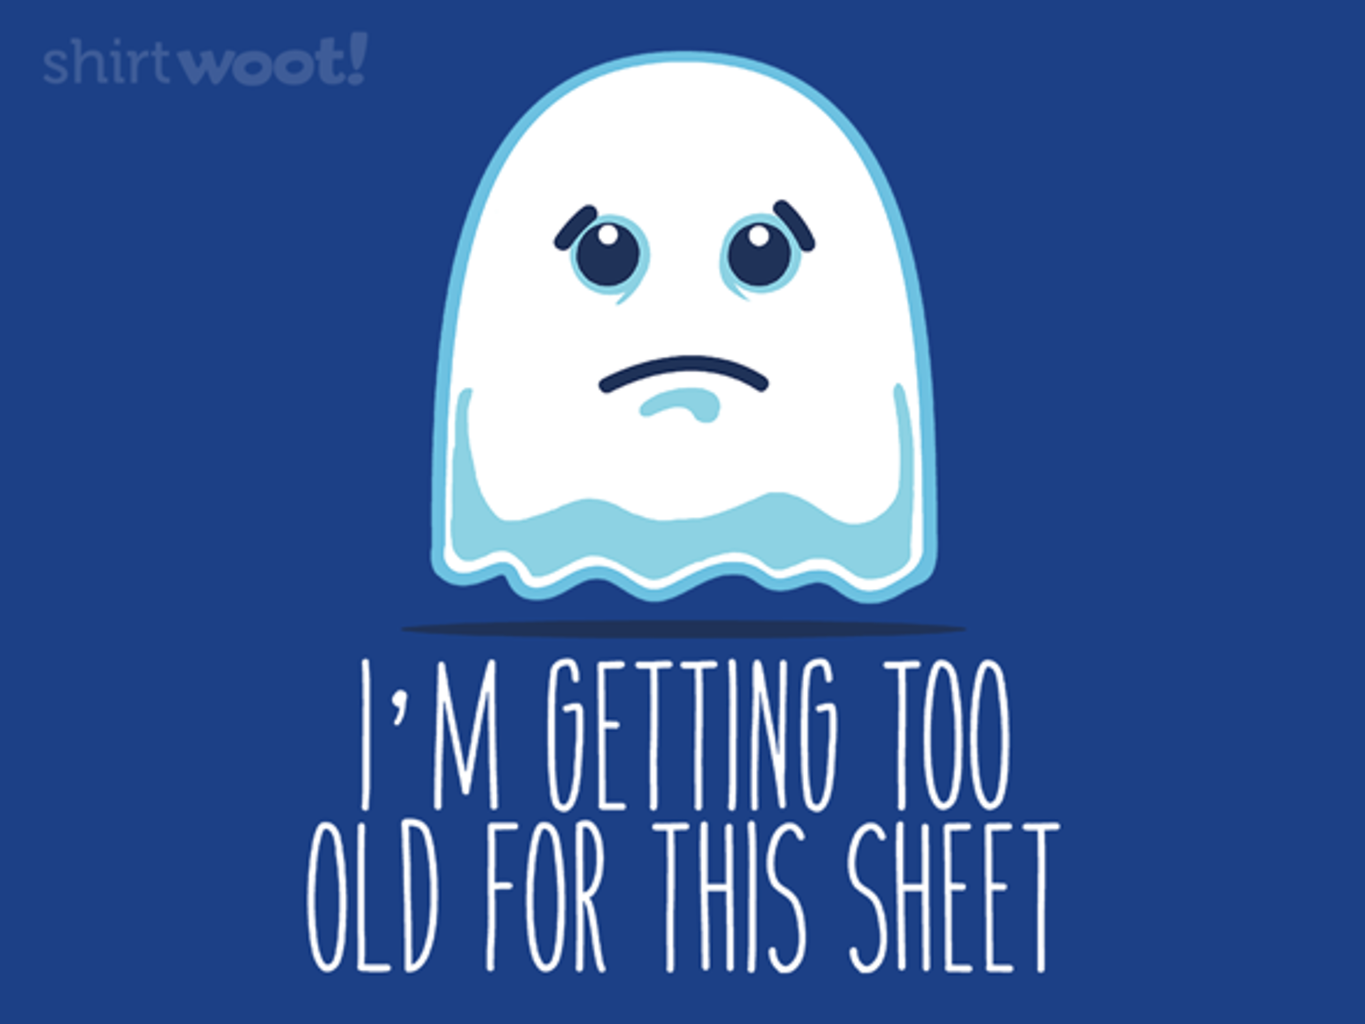 Woot!: Too Old for this Sheet